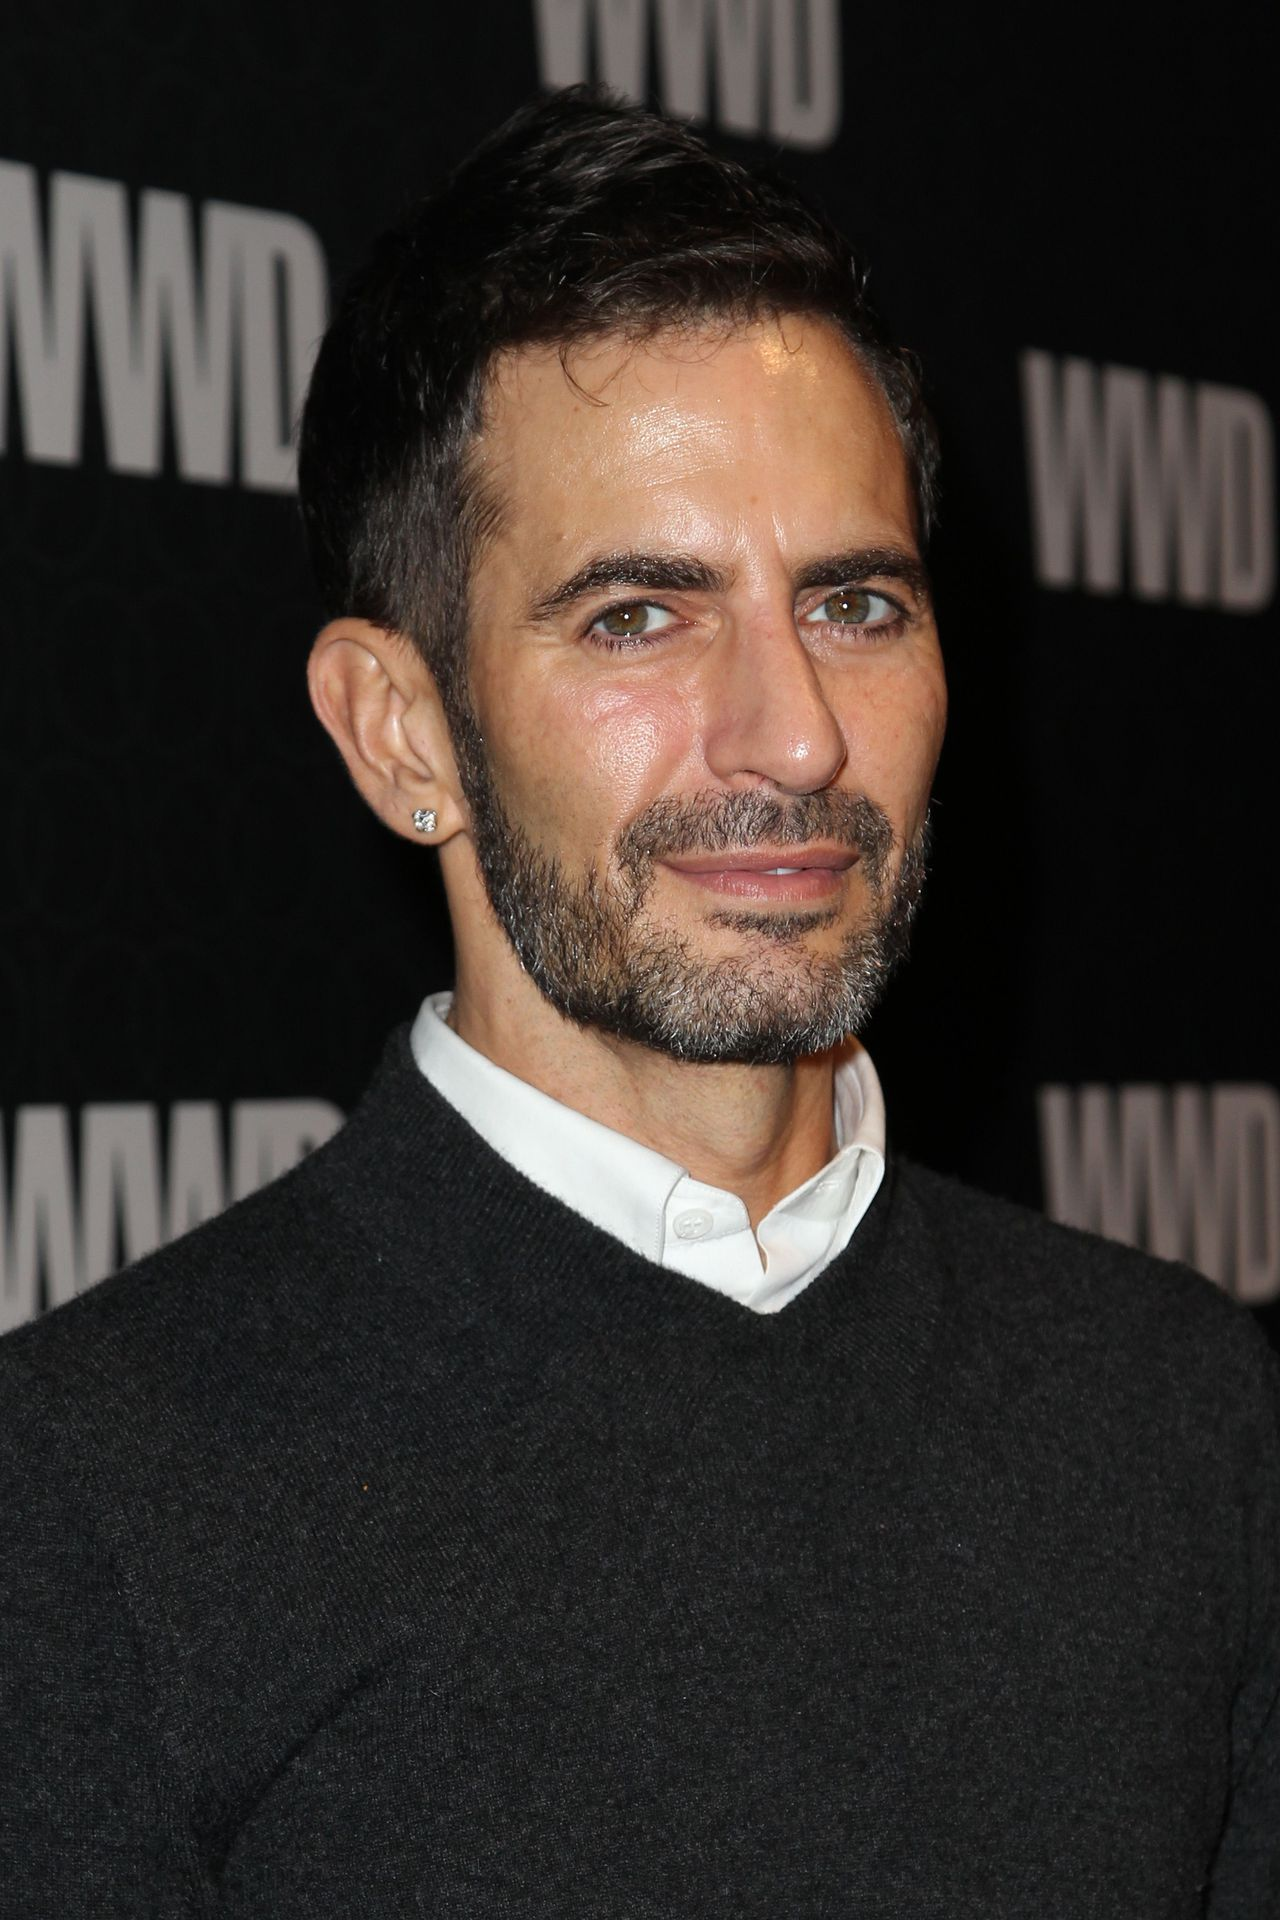 (FILES) - A file picture shows US designer Marc Jacobs during the WWD @ 100 Anniversary Party at Cipriani 42nd Street in New York City, November 2, 2010. Jacobs, actually artistic director of LVMH luxury group could replace British designer John Galliano according to US fashion magazine Women's wear daily (WWD) on August 22, 2011. AFP PHOTO / Elizabeth Pantaleo